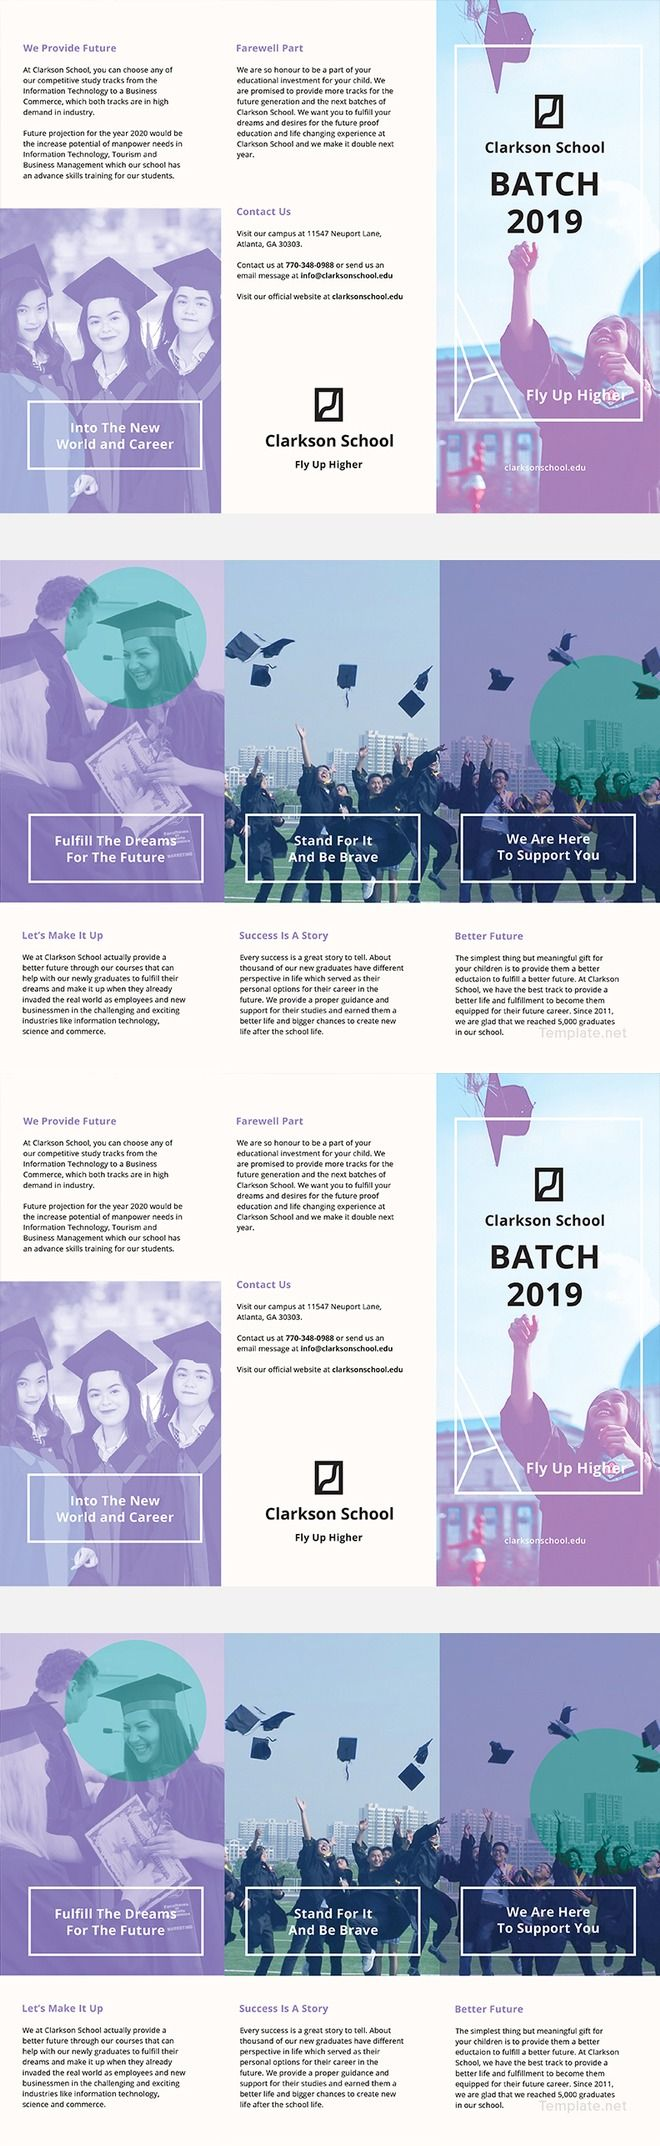 Free Graduation Brochure Template - Professional Brochure Design for College & University Study. Available in PSD, Illustrator, Word, InDesign, Publisher, iPages.